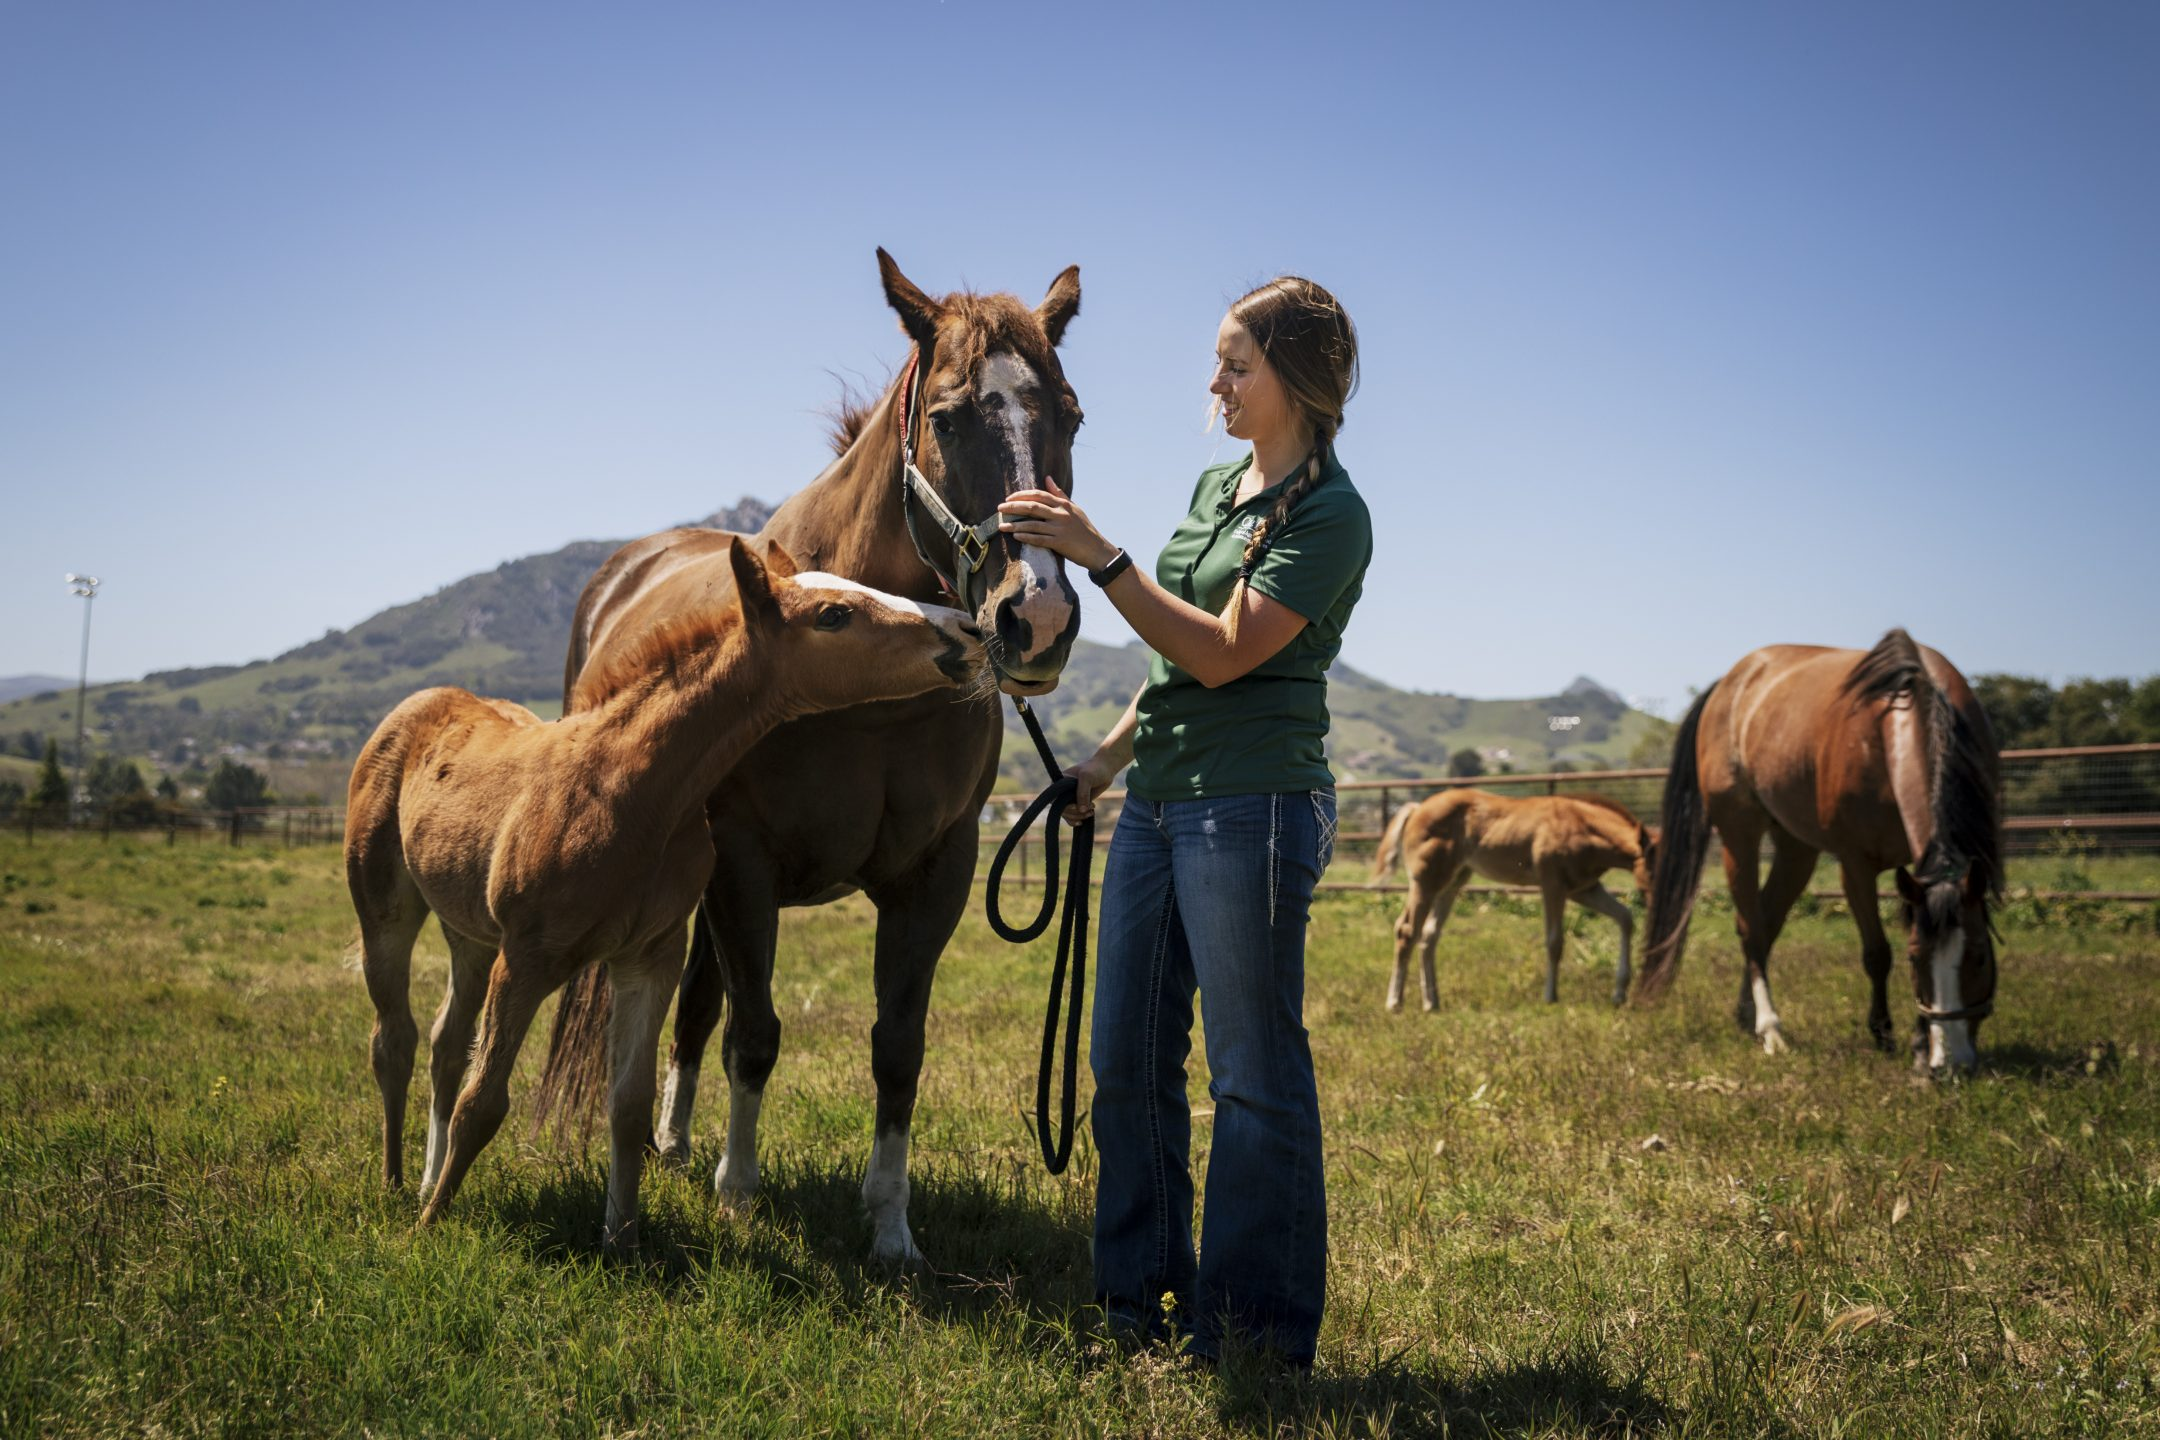 A young woman in a green Cal Poly polo shirt pets a mare while a young foal nuzzles its mother in an open field with mountains in the background.